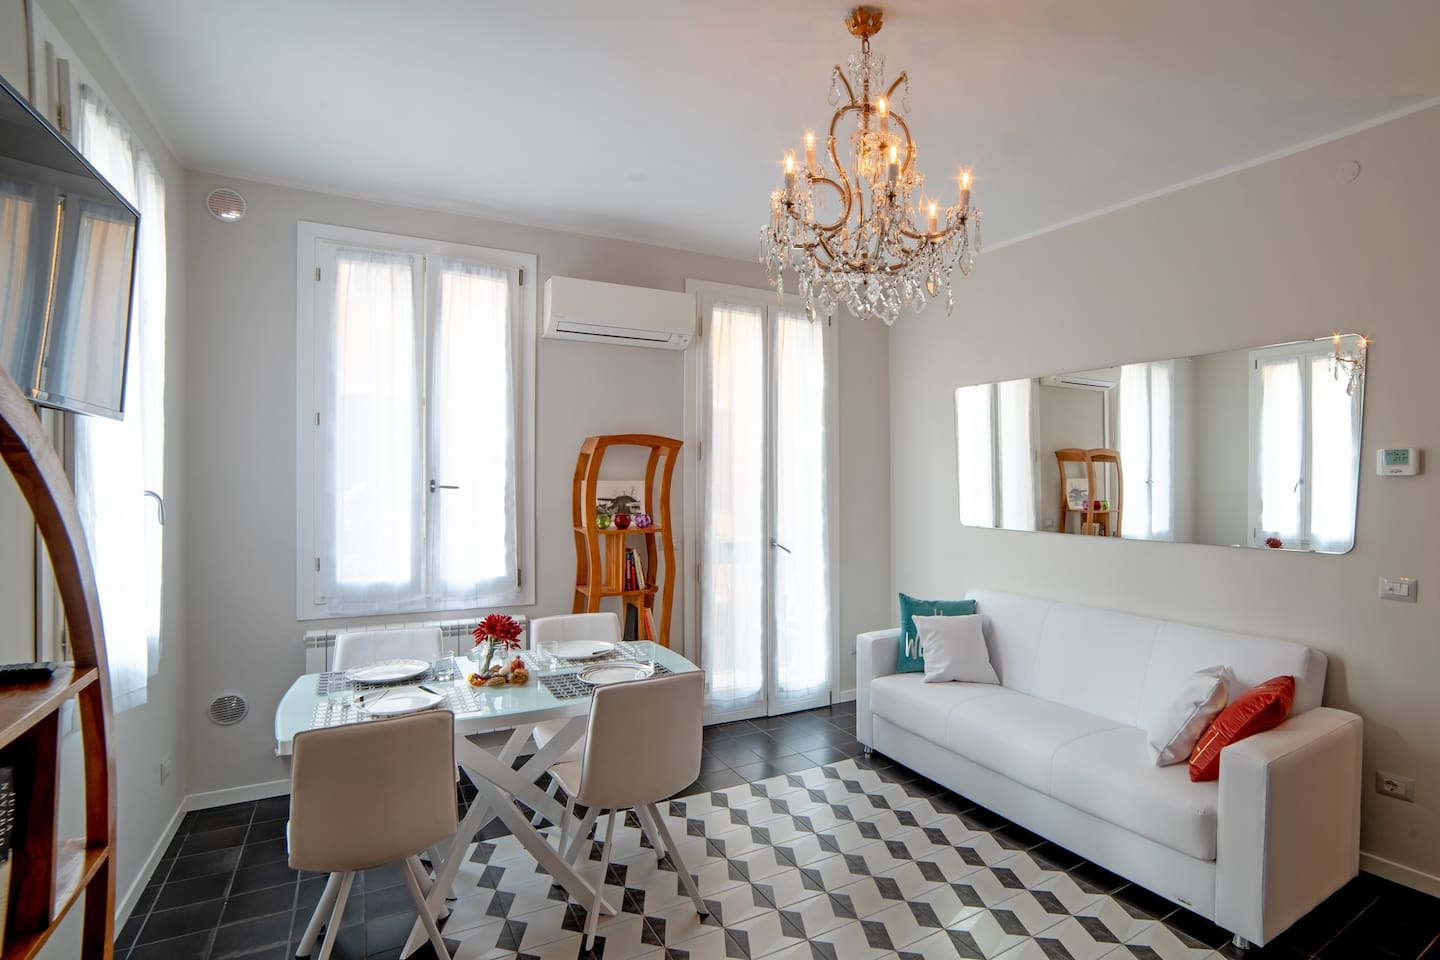 Bright Living Room - Air Conditioning, Flat screen Television, Lovely terrace - Flat close by Jewish Ghetto Venice - 10 minutes walk from Train Station